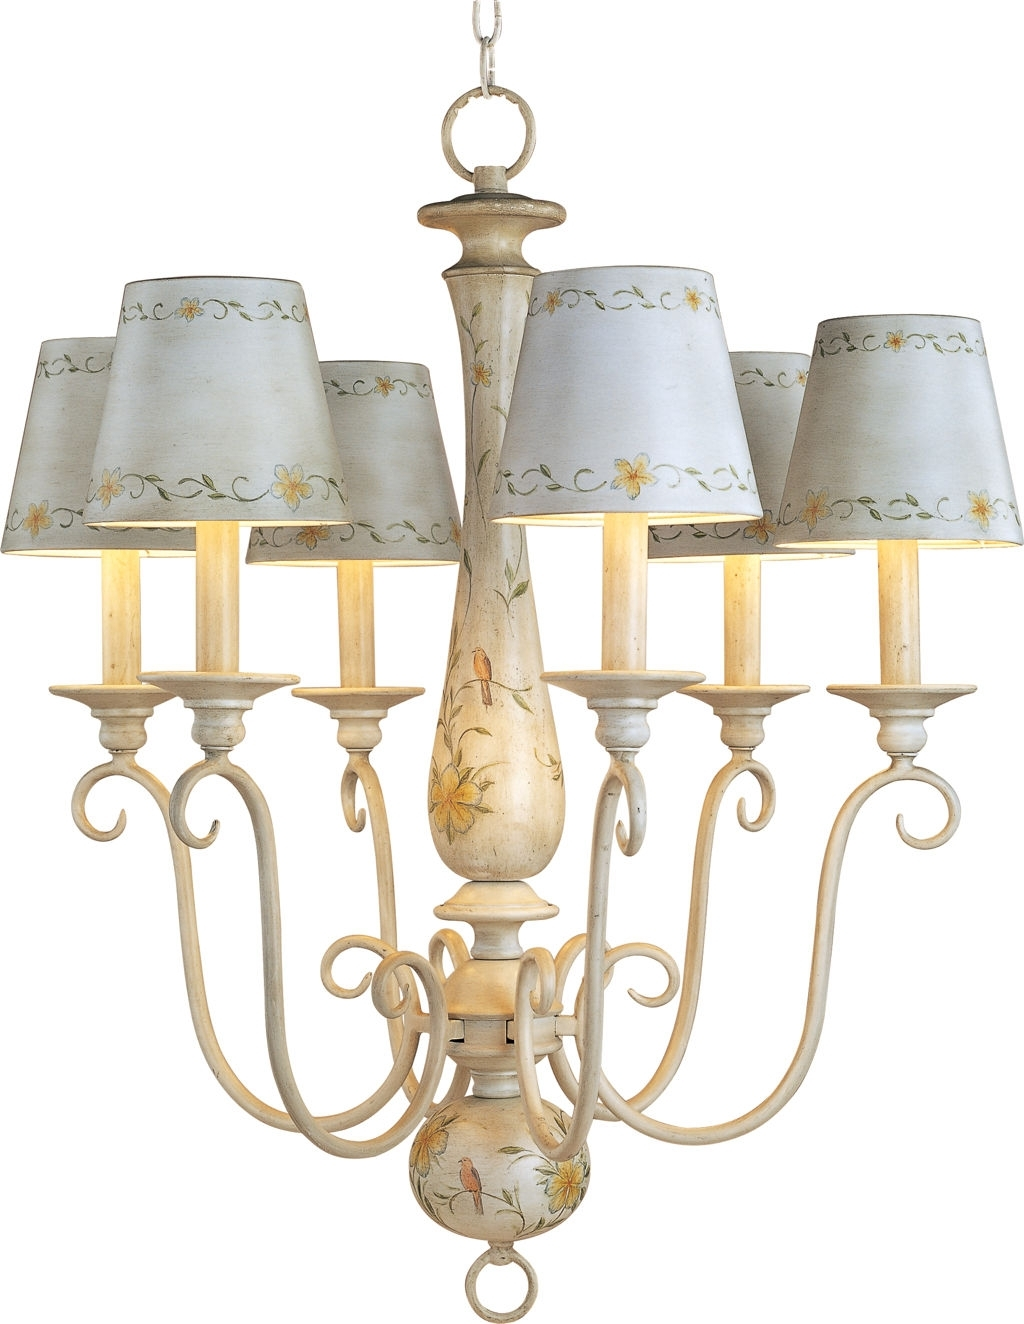 Furniture : Inspiring Chandelier Lampshades Set Candles On The Intended For Trendy Chandelier Lampshades (View 13 of 20)